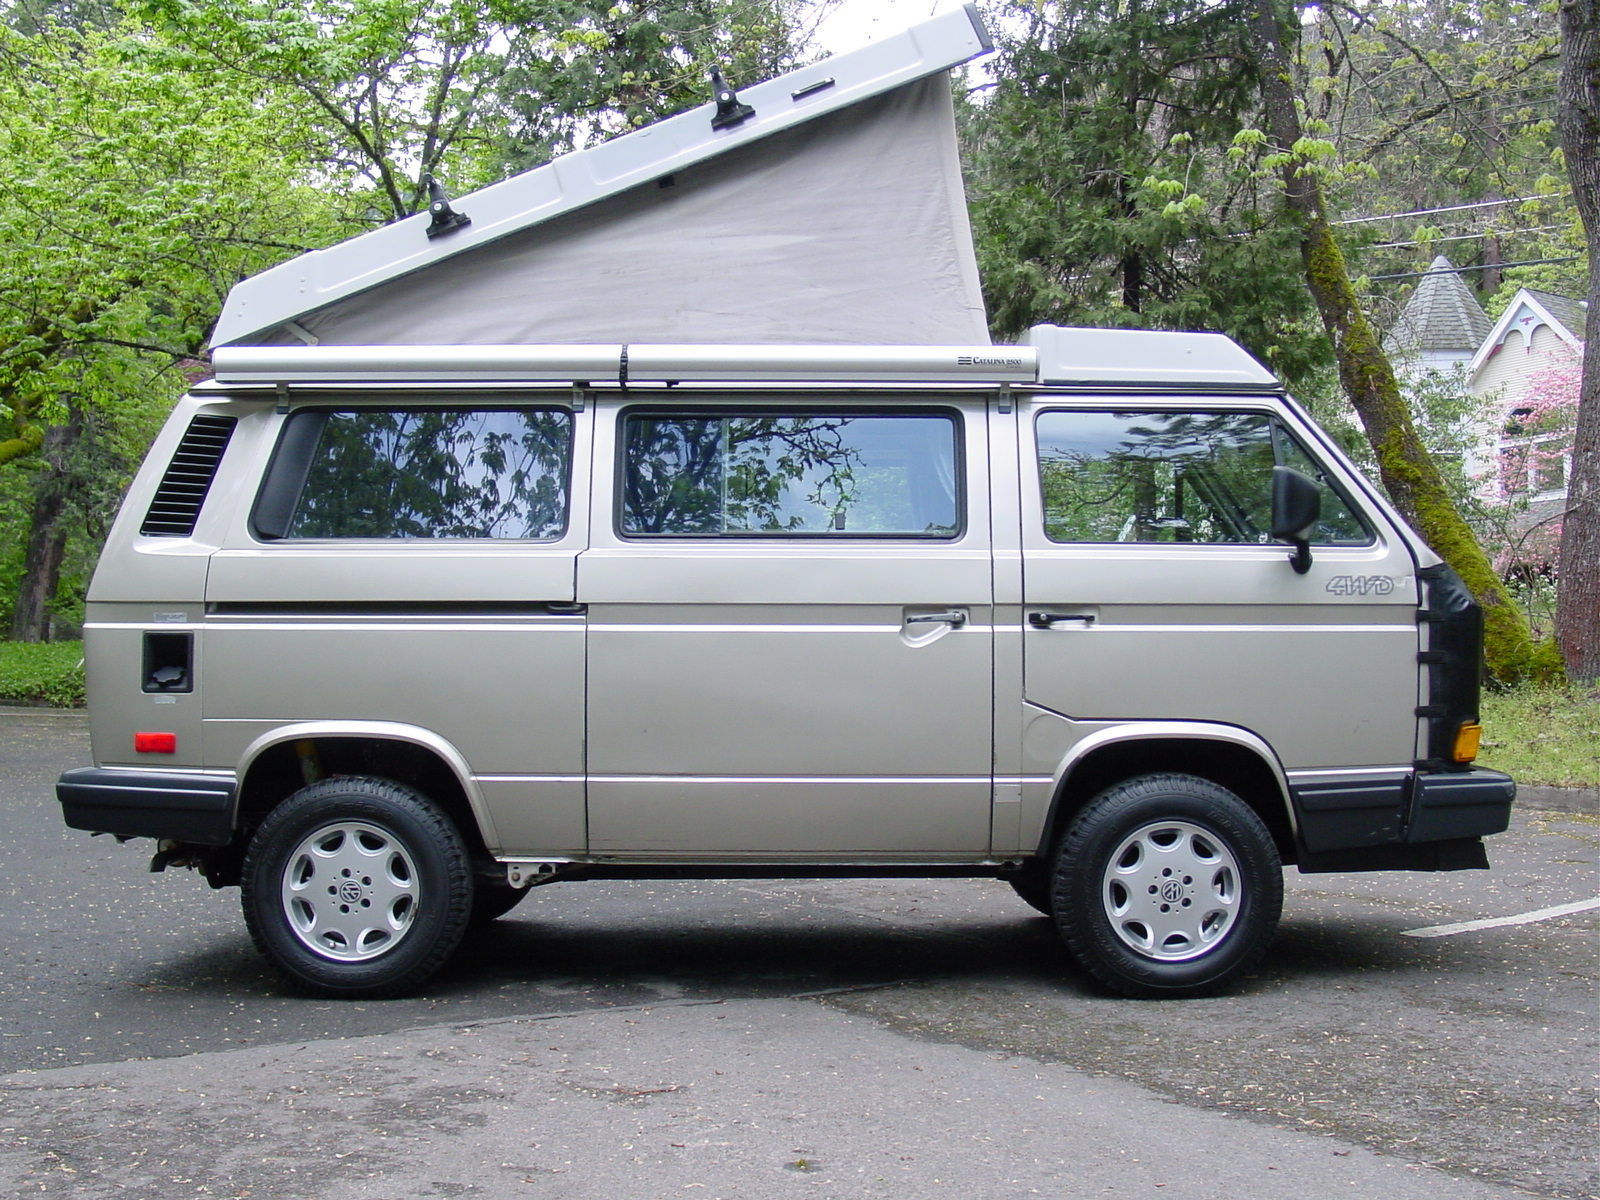 1991 VW Vanagon Syncro Westfalia Camper Auction In Ashland, OR - Ends April 27th